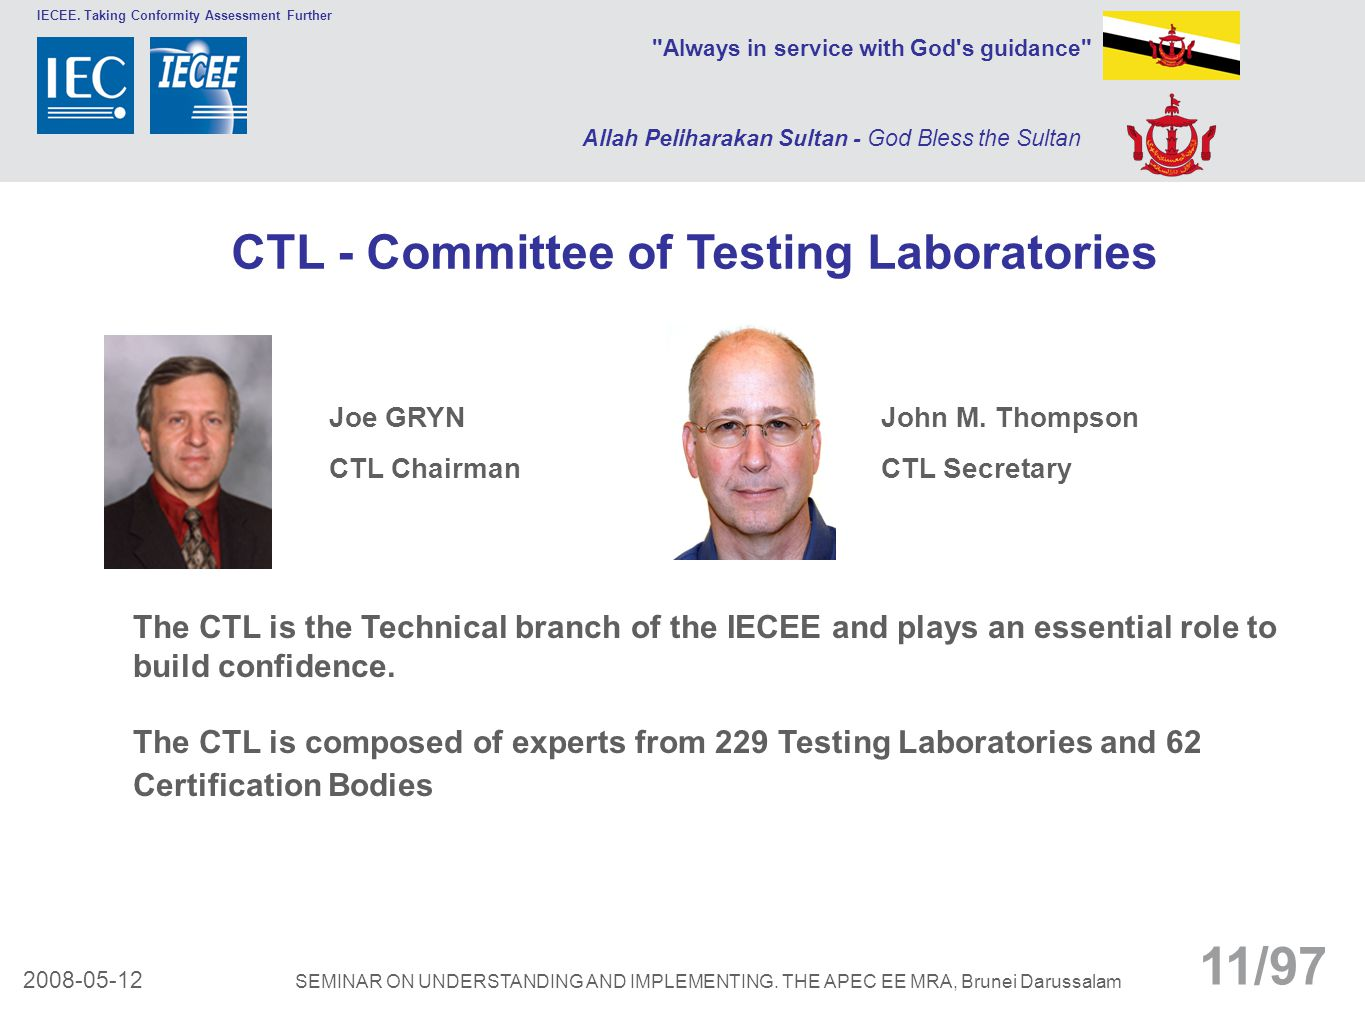 CTL - Committee of Testing Laboratories